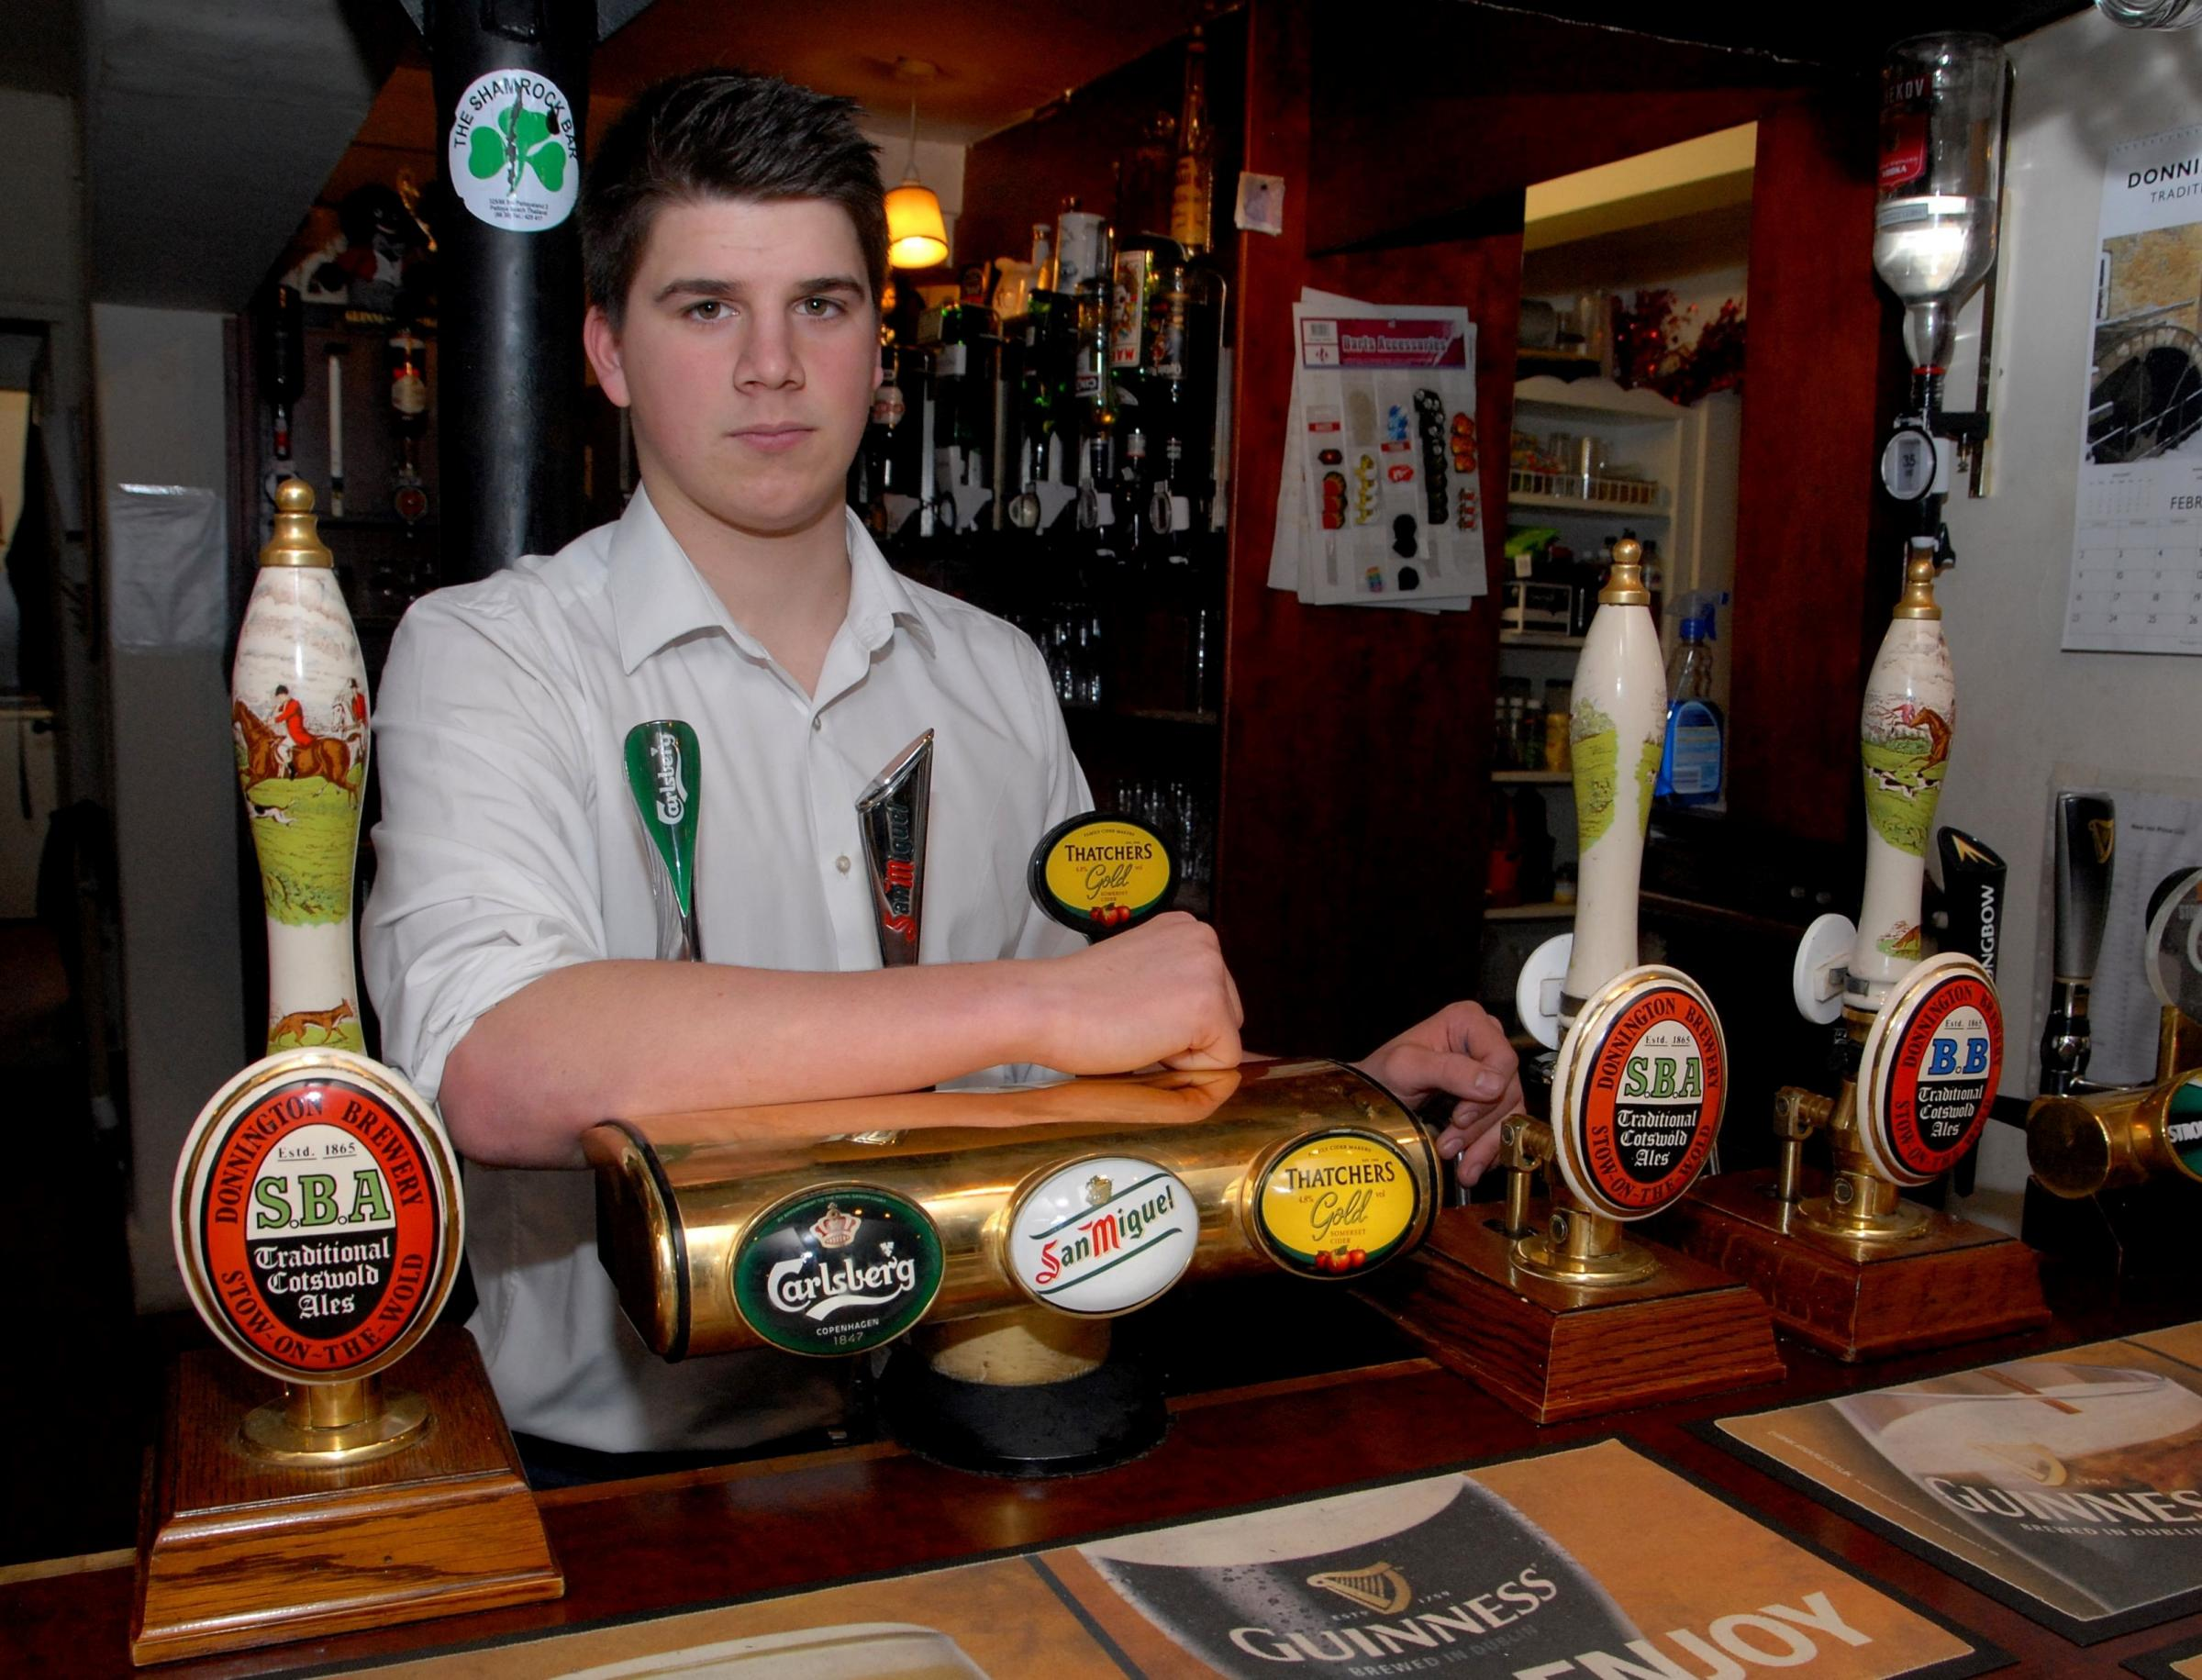 Charity funds stolen from pubs by 'scum'